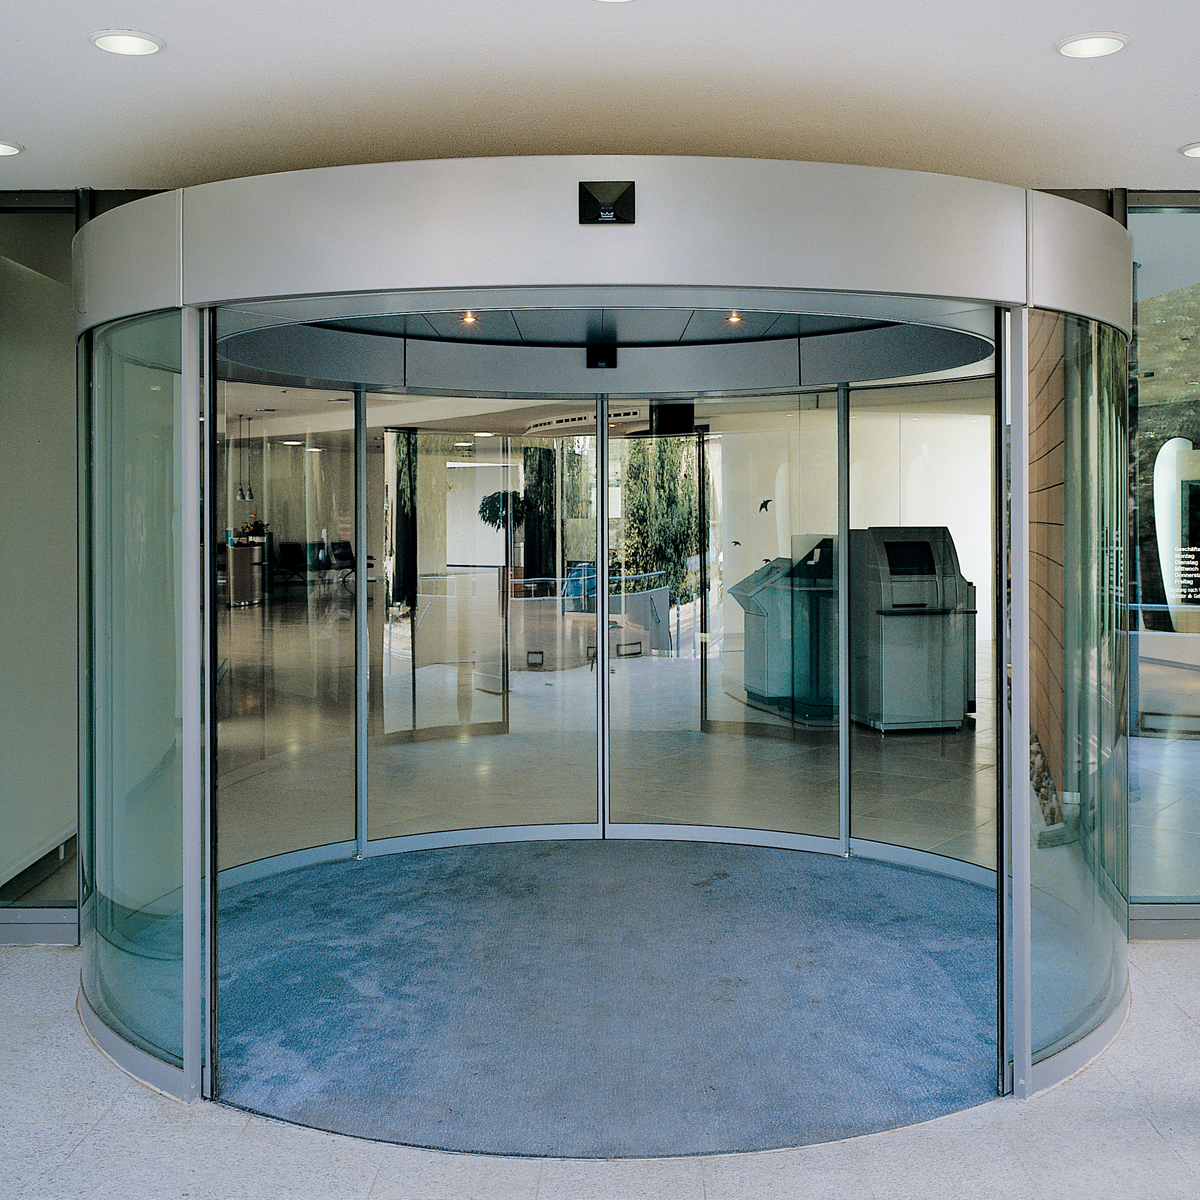 Dorma Bstfbst Curved Sliding Doors For Individual Entrance Areas